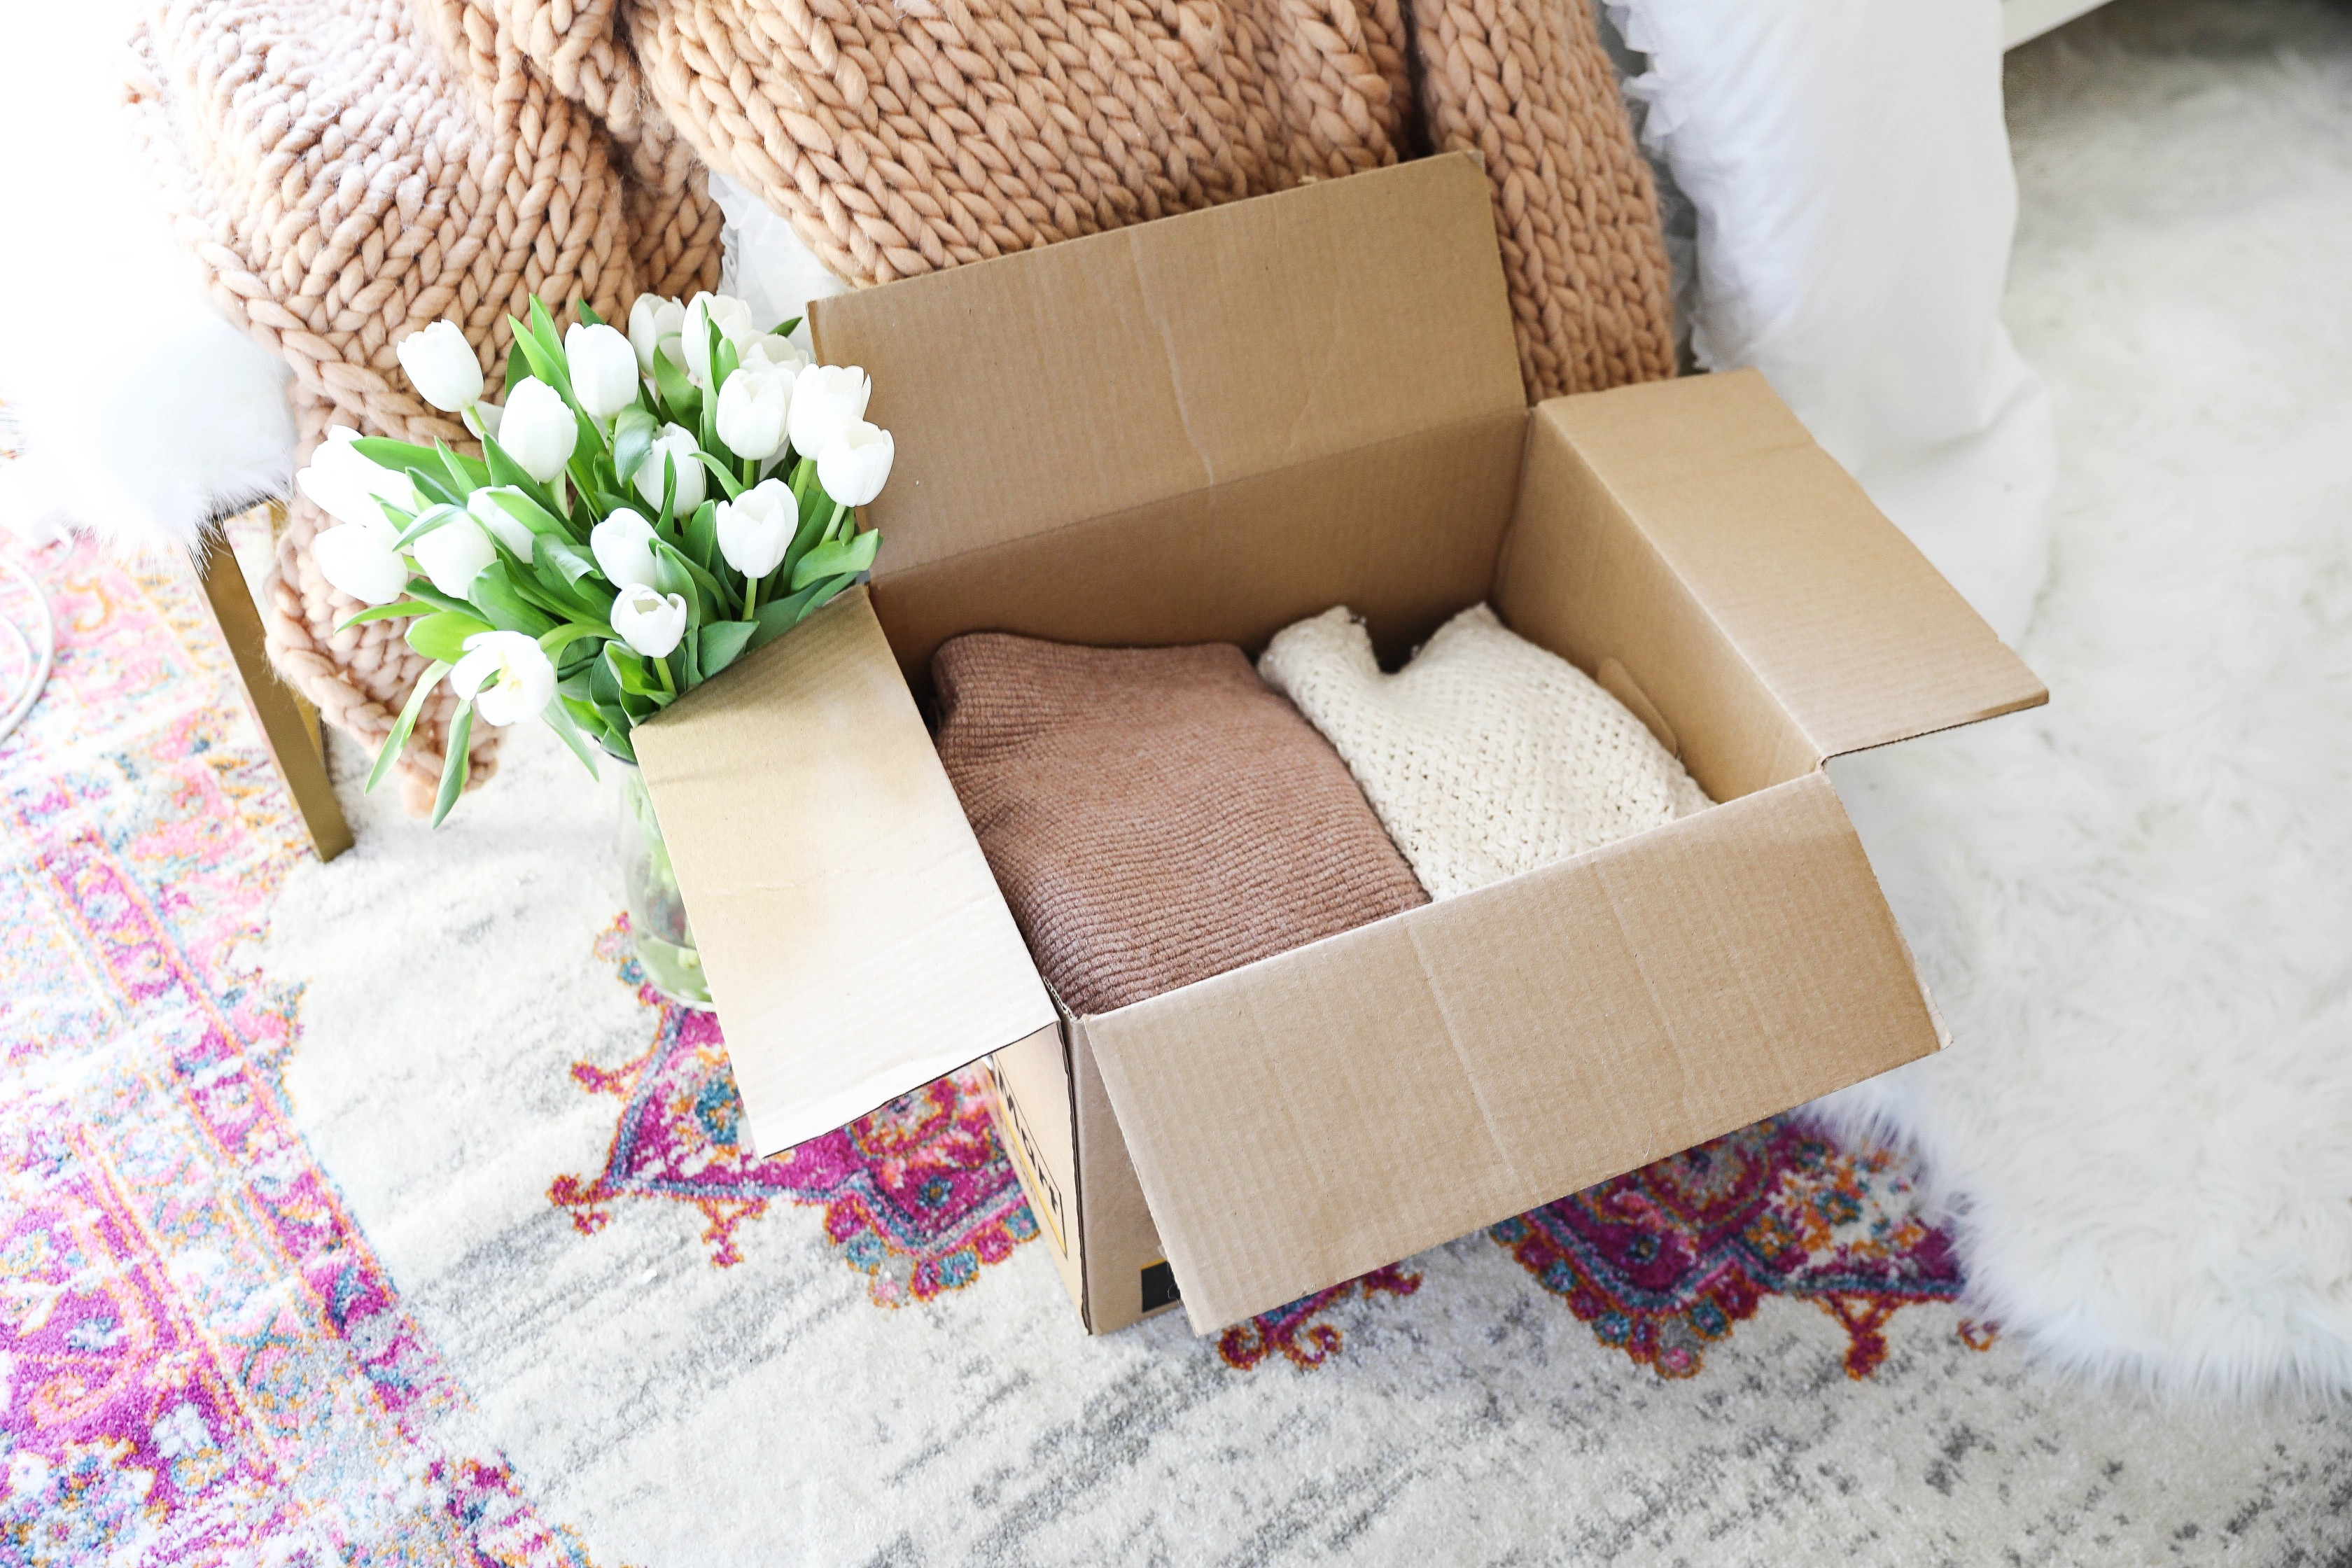 Packing tips or moving! College moving tips for a new apartment! Tips for packing for a move! Details on fashion blog daily dose of charm by lauren lindmark